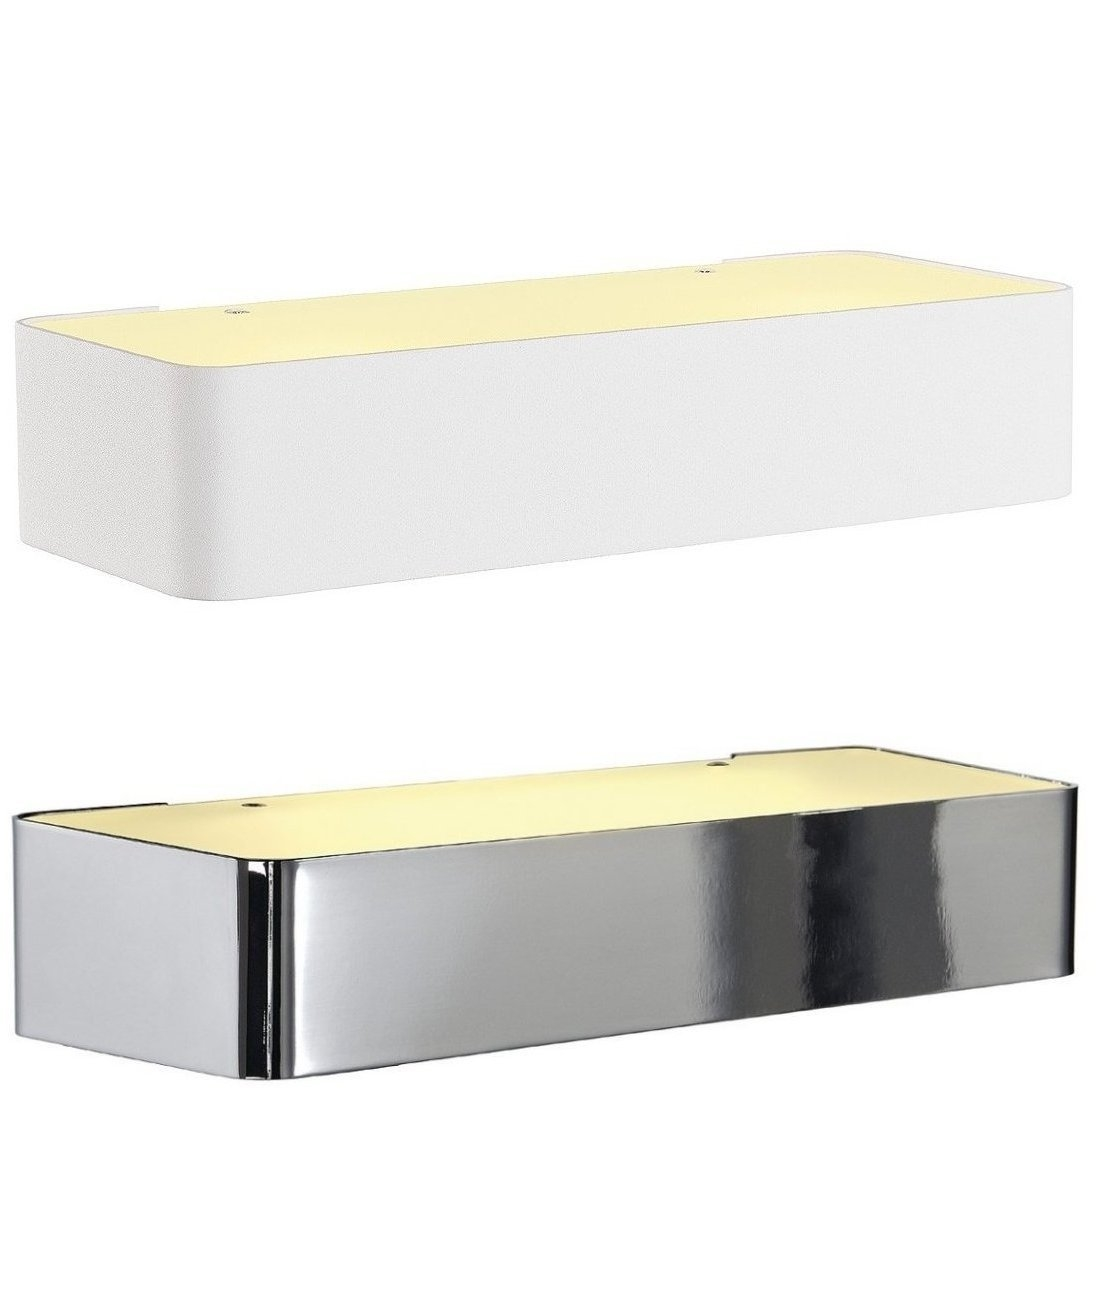 White Box Wall Lights : Rectangular wall light with opal glass in two finishes